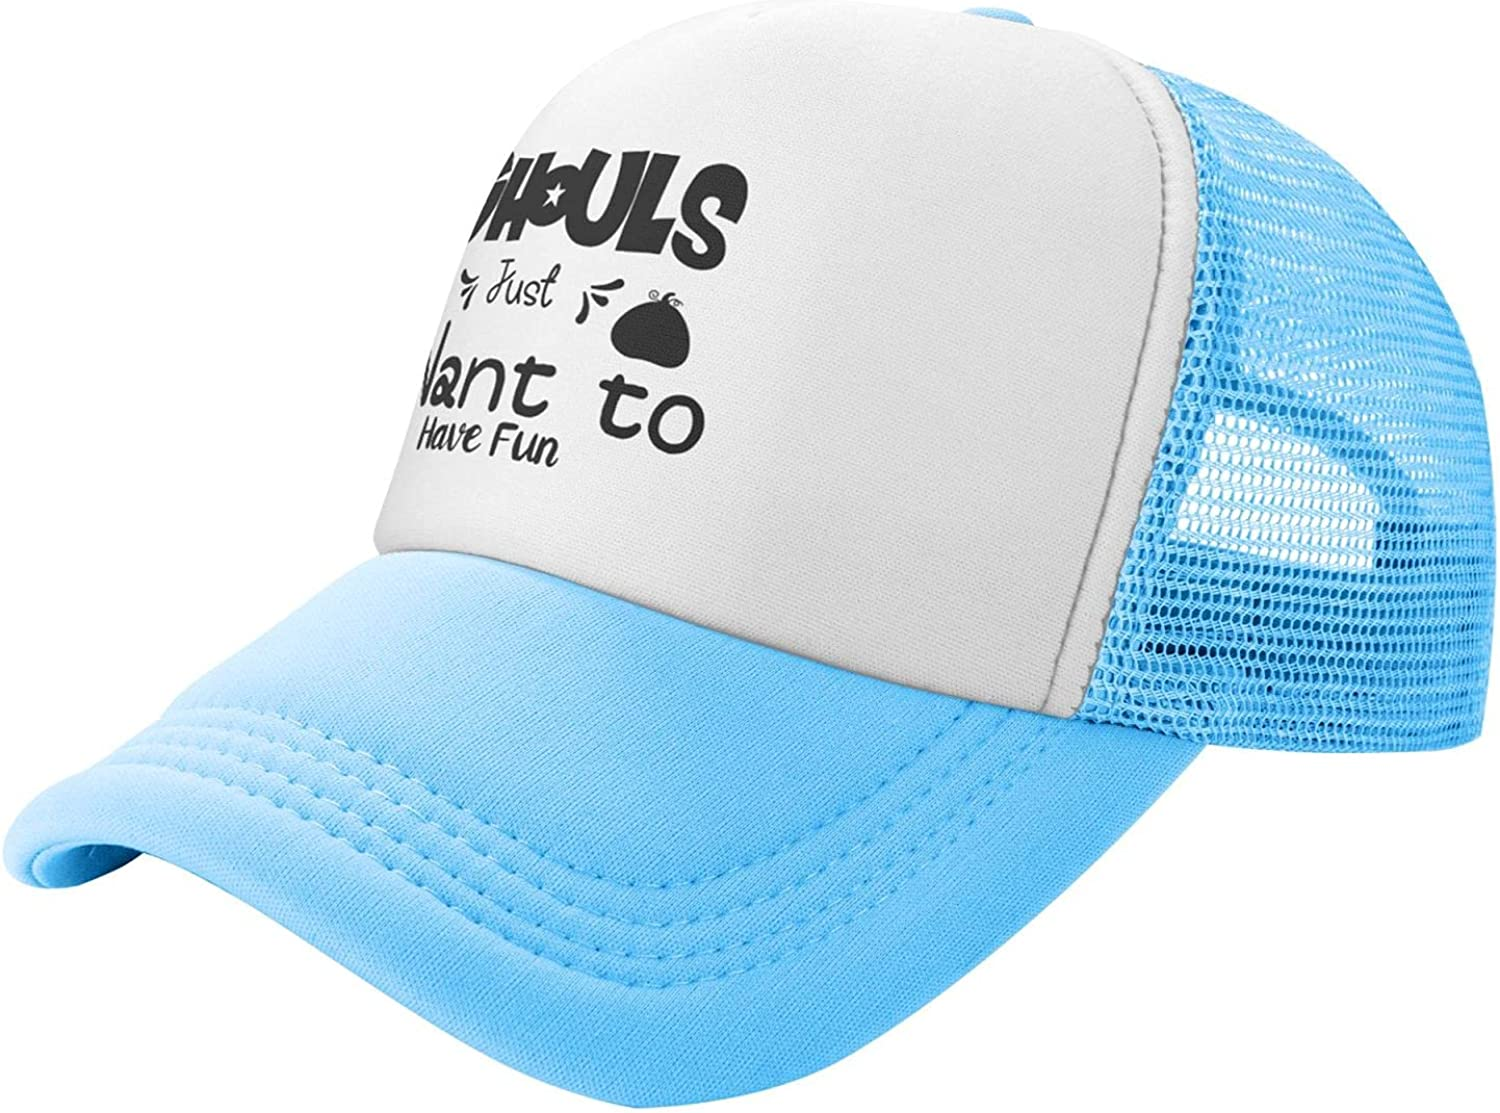 Chicago Mall Myshe Summer Mesh Baseball Cap Ghouls Just Fun Time sale Have Funn Want to